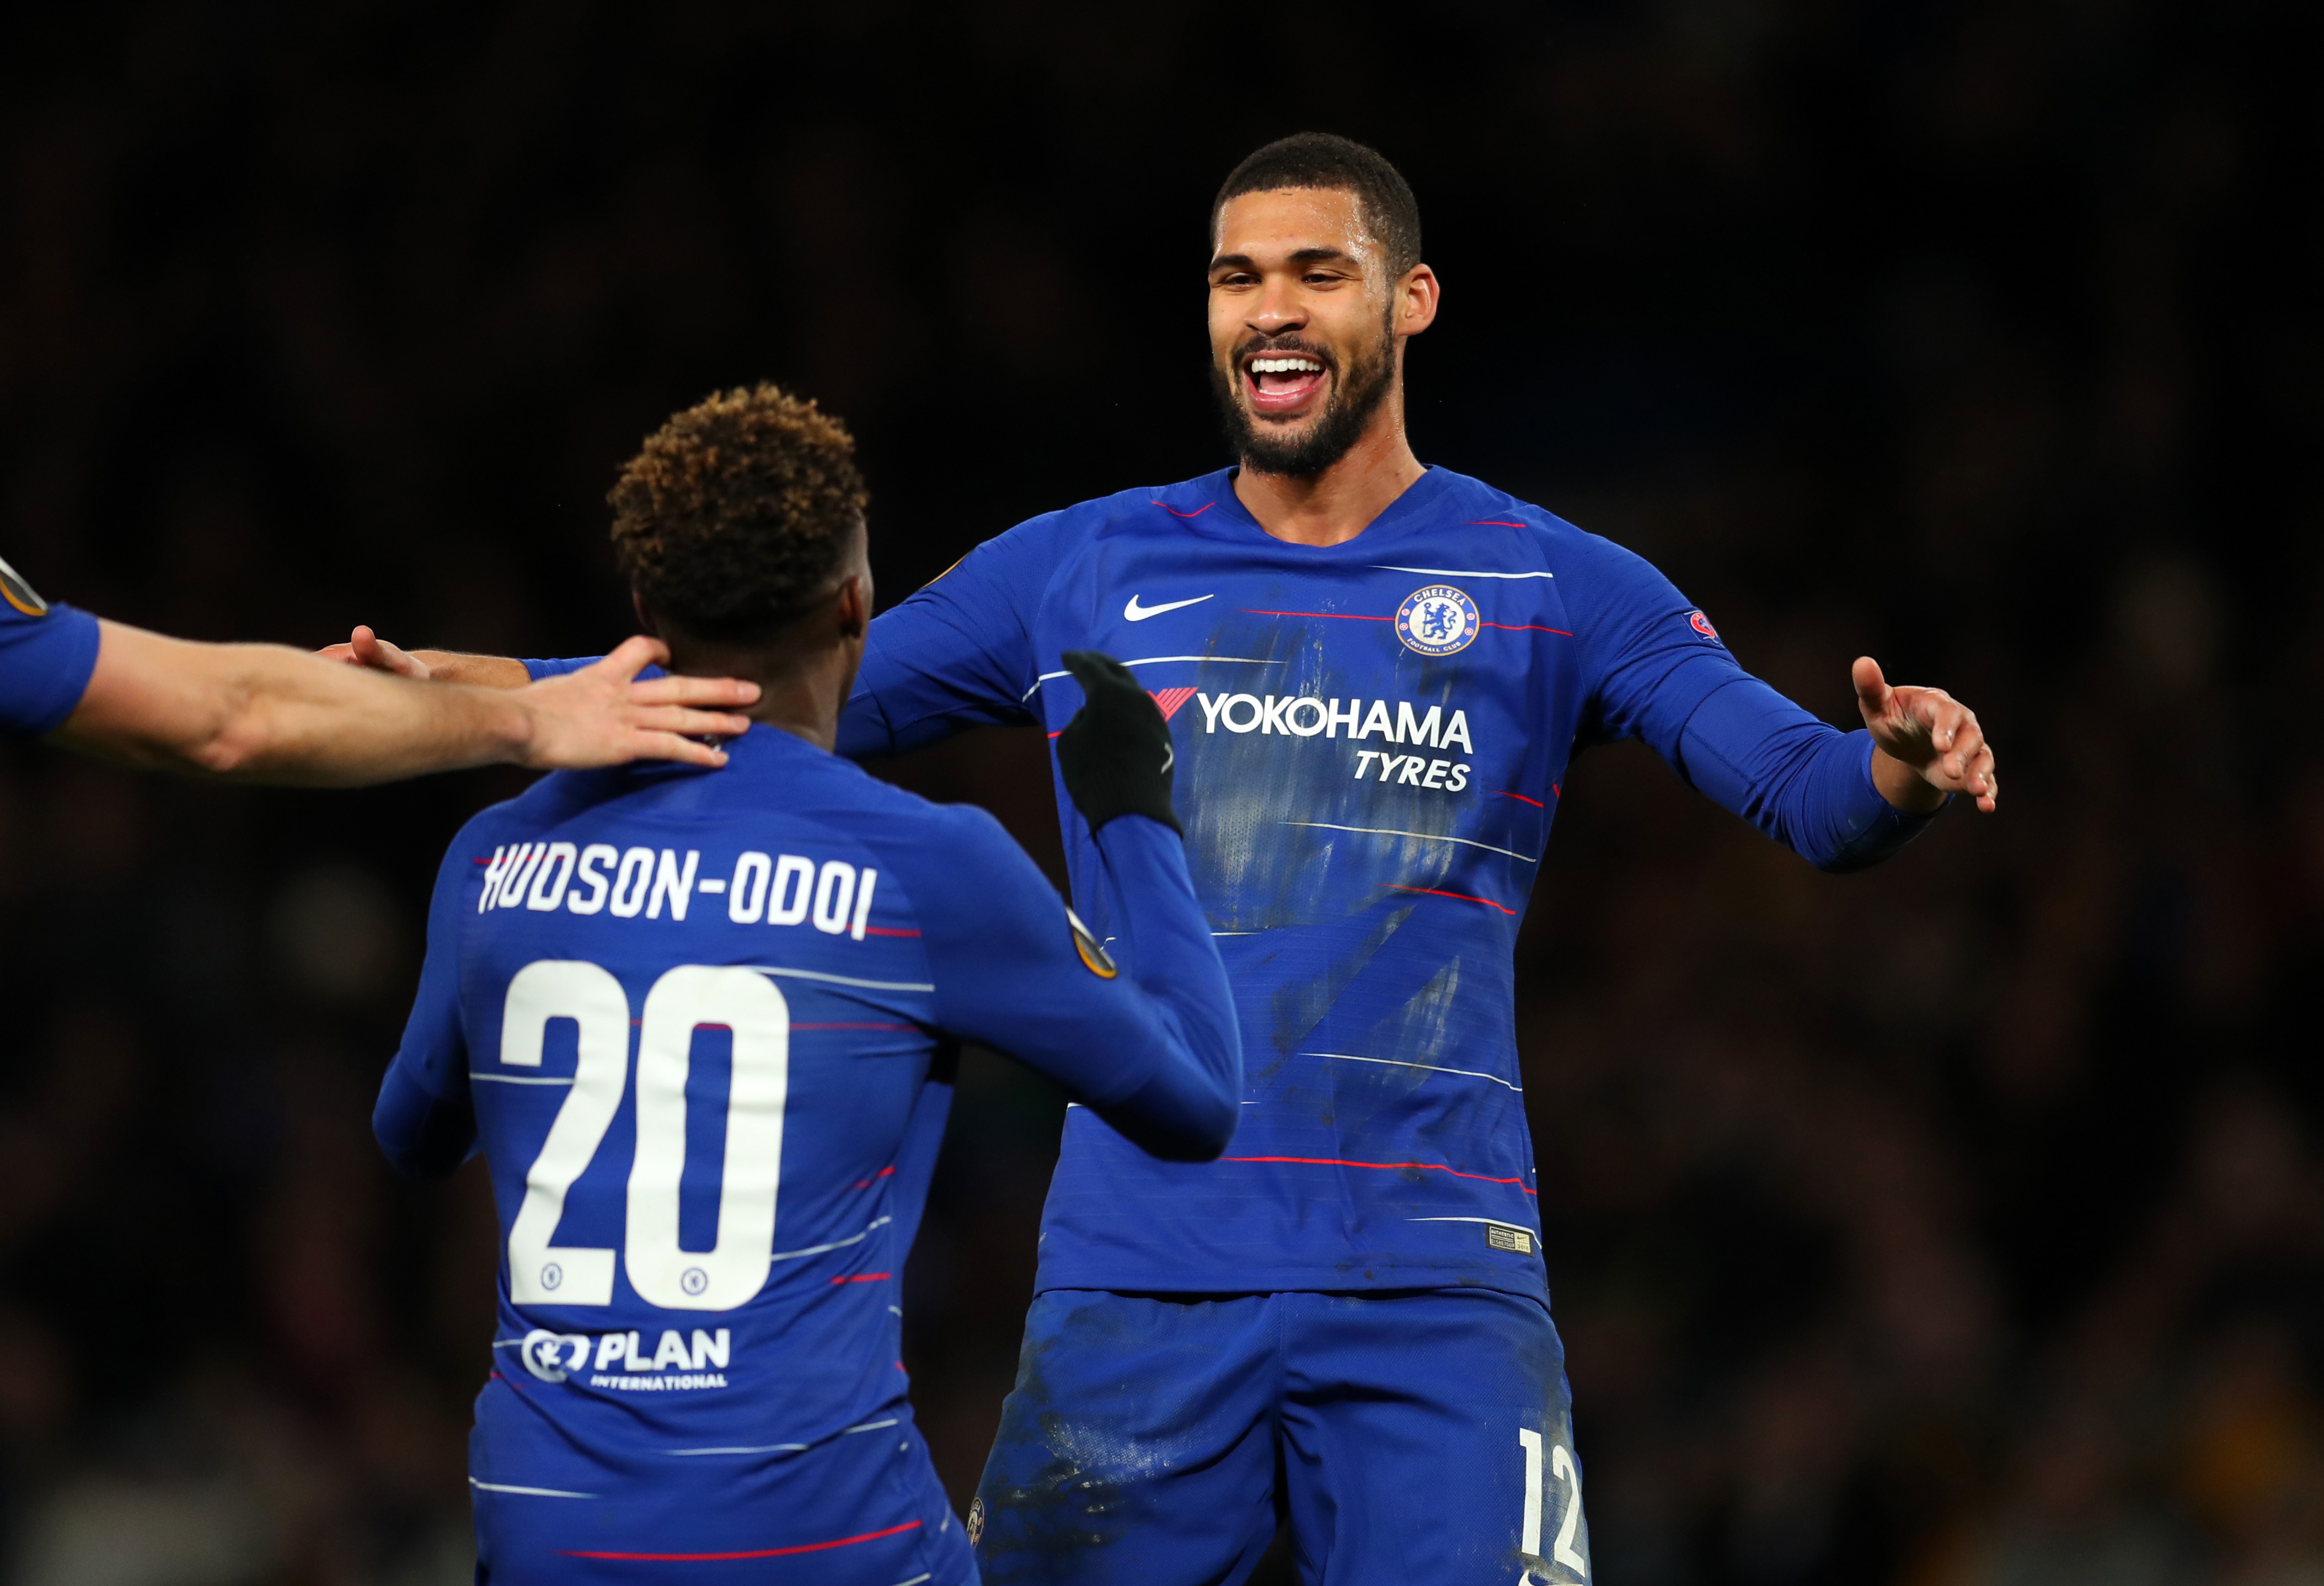 Loftus-Cheek, Hudson-Odoi back to work at Cobham recovering from Achilles injuries